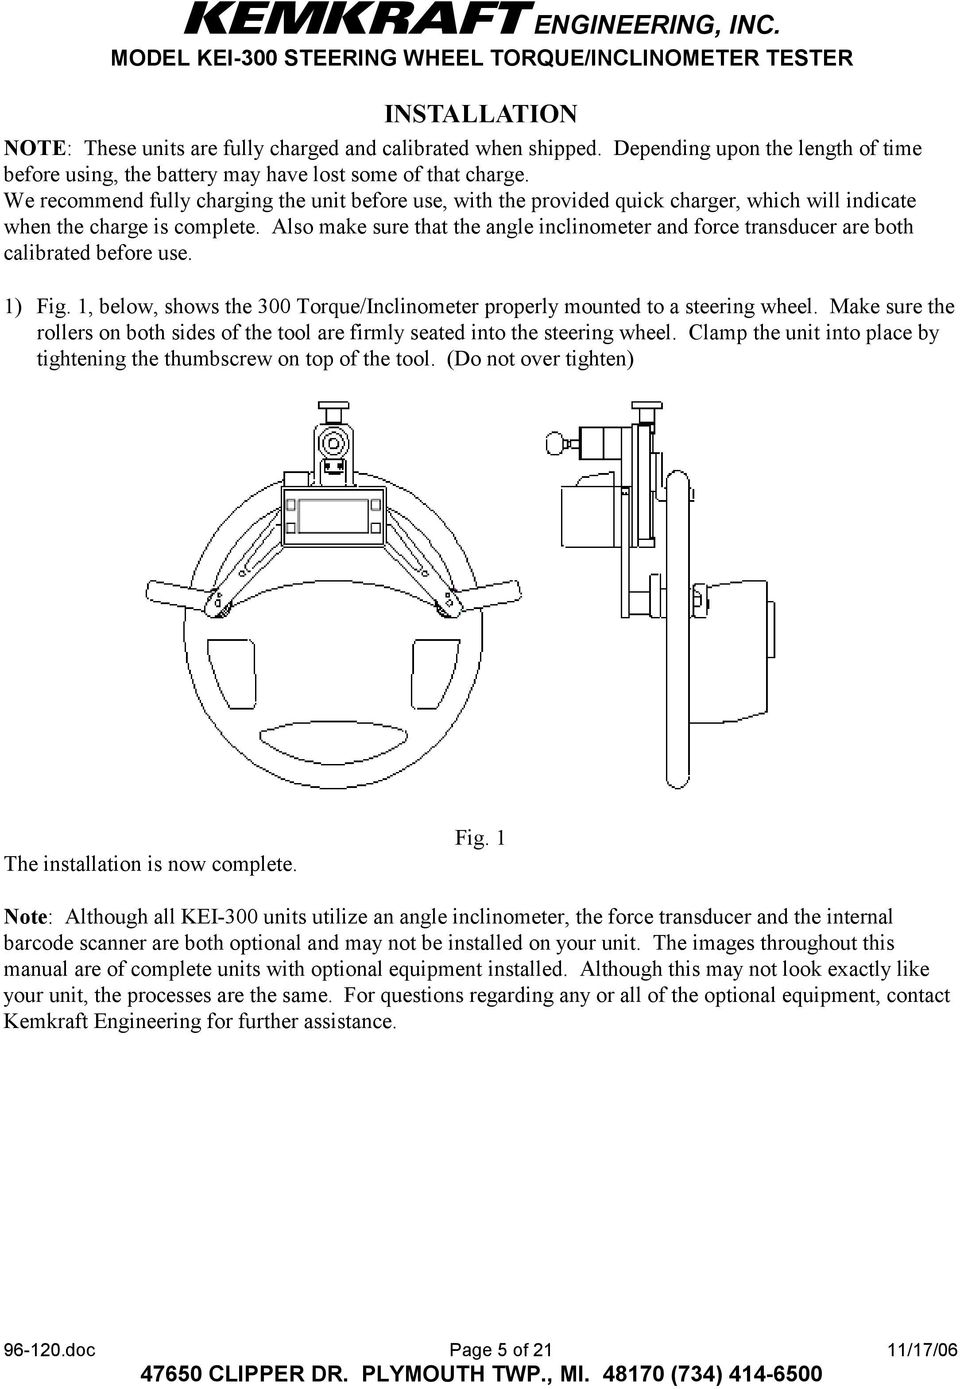 Instruction Manual Steering Wheel Torque Inclinometer System Model Wiring Diagram Also Make Sure That The Angle And Force Transducer Are Both Calibrated Before Use